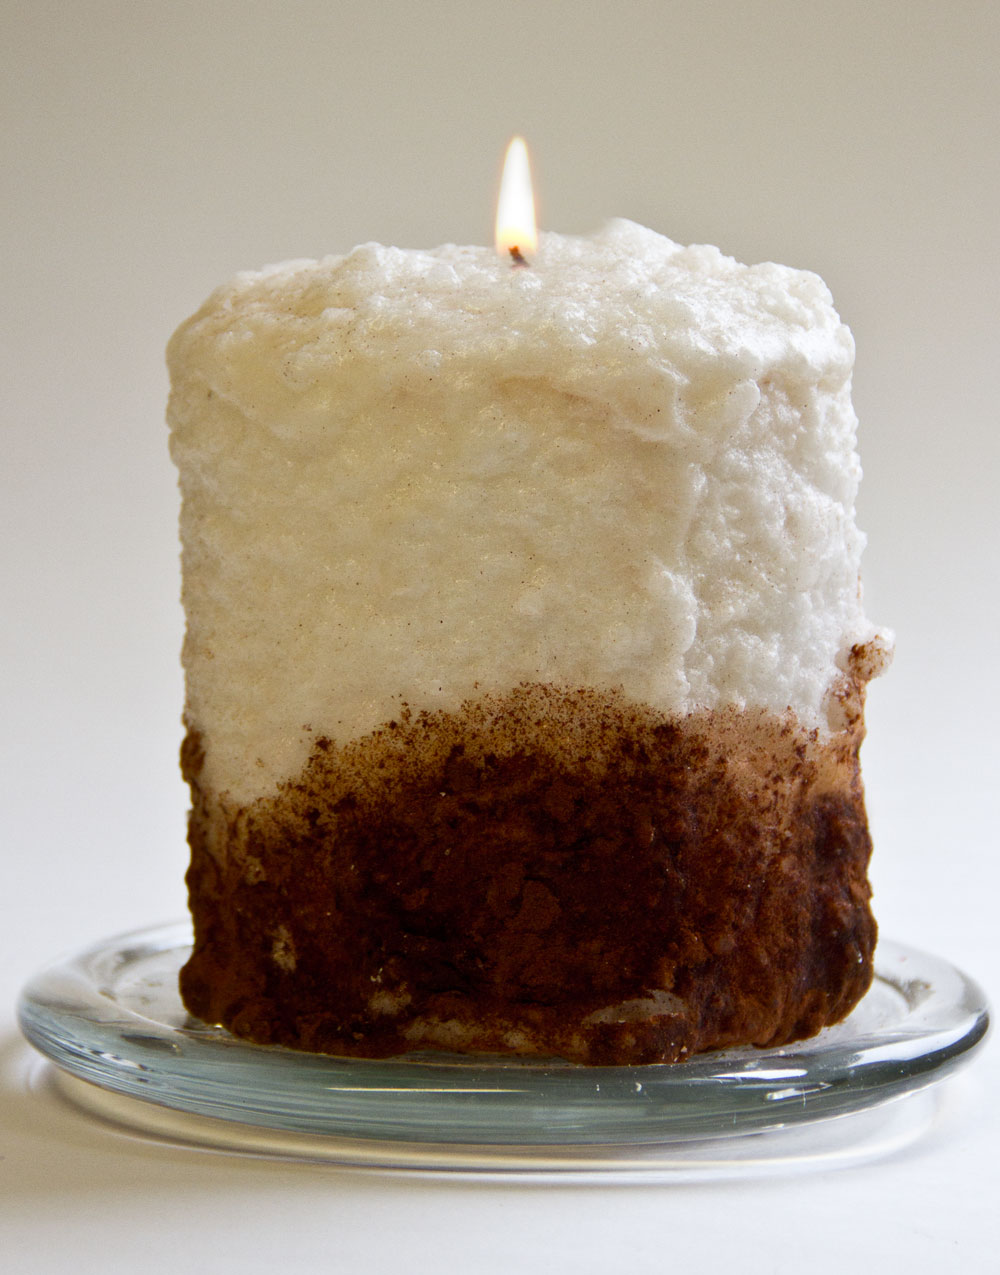 Cinnamon Fried Ice Cream Hearth Candle